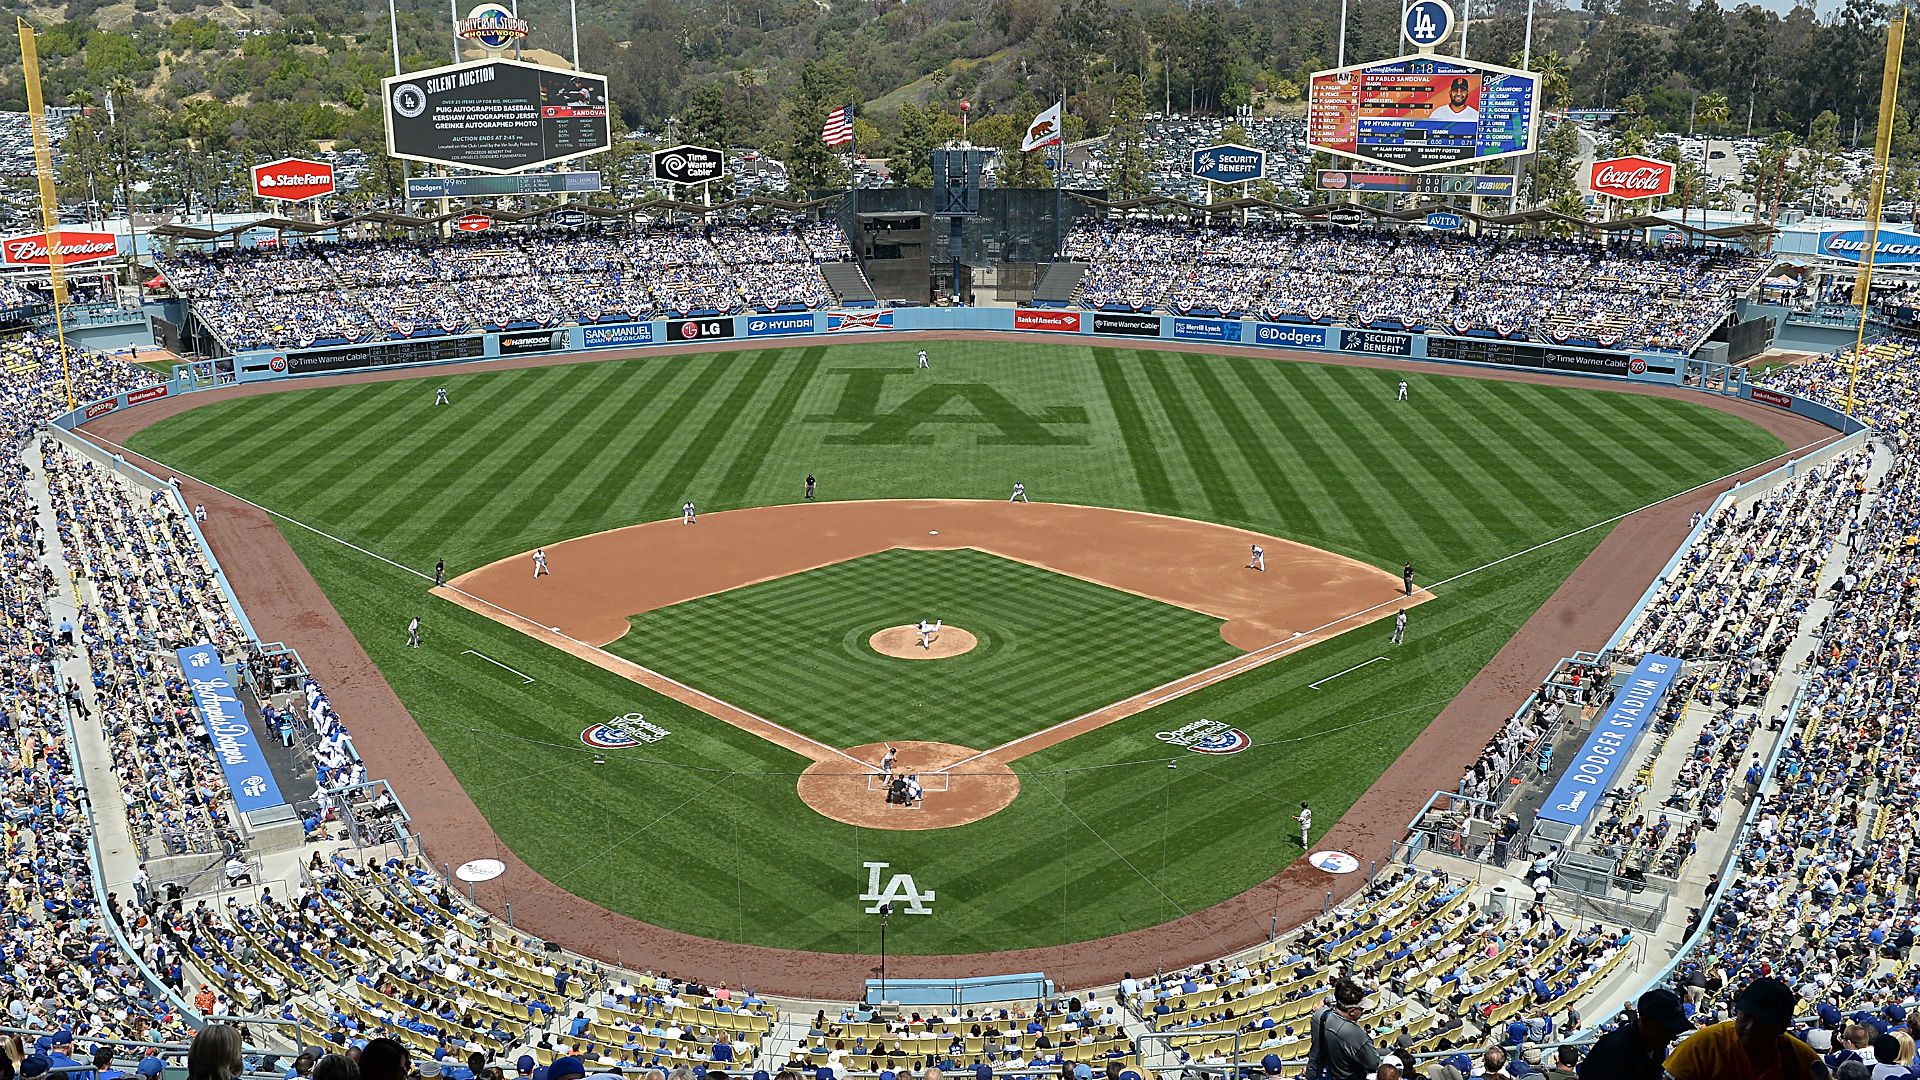 'The Sandlot' cast takes over Dodger Stadium to celebrate 25th anniversary